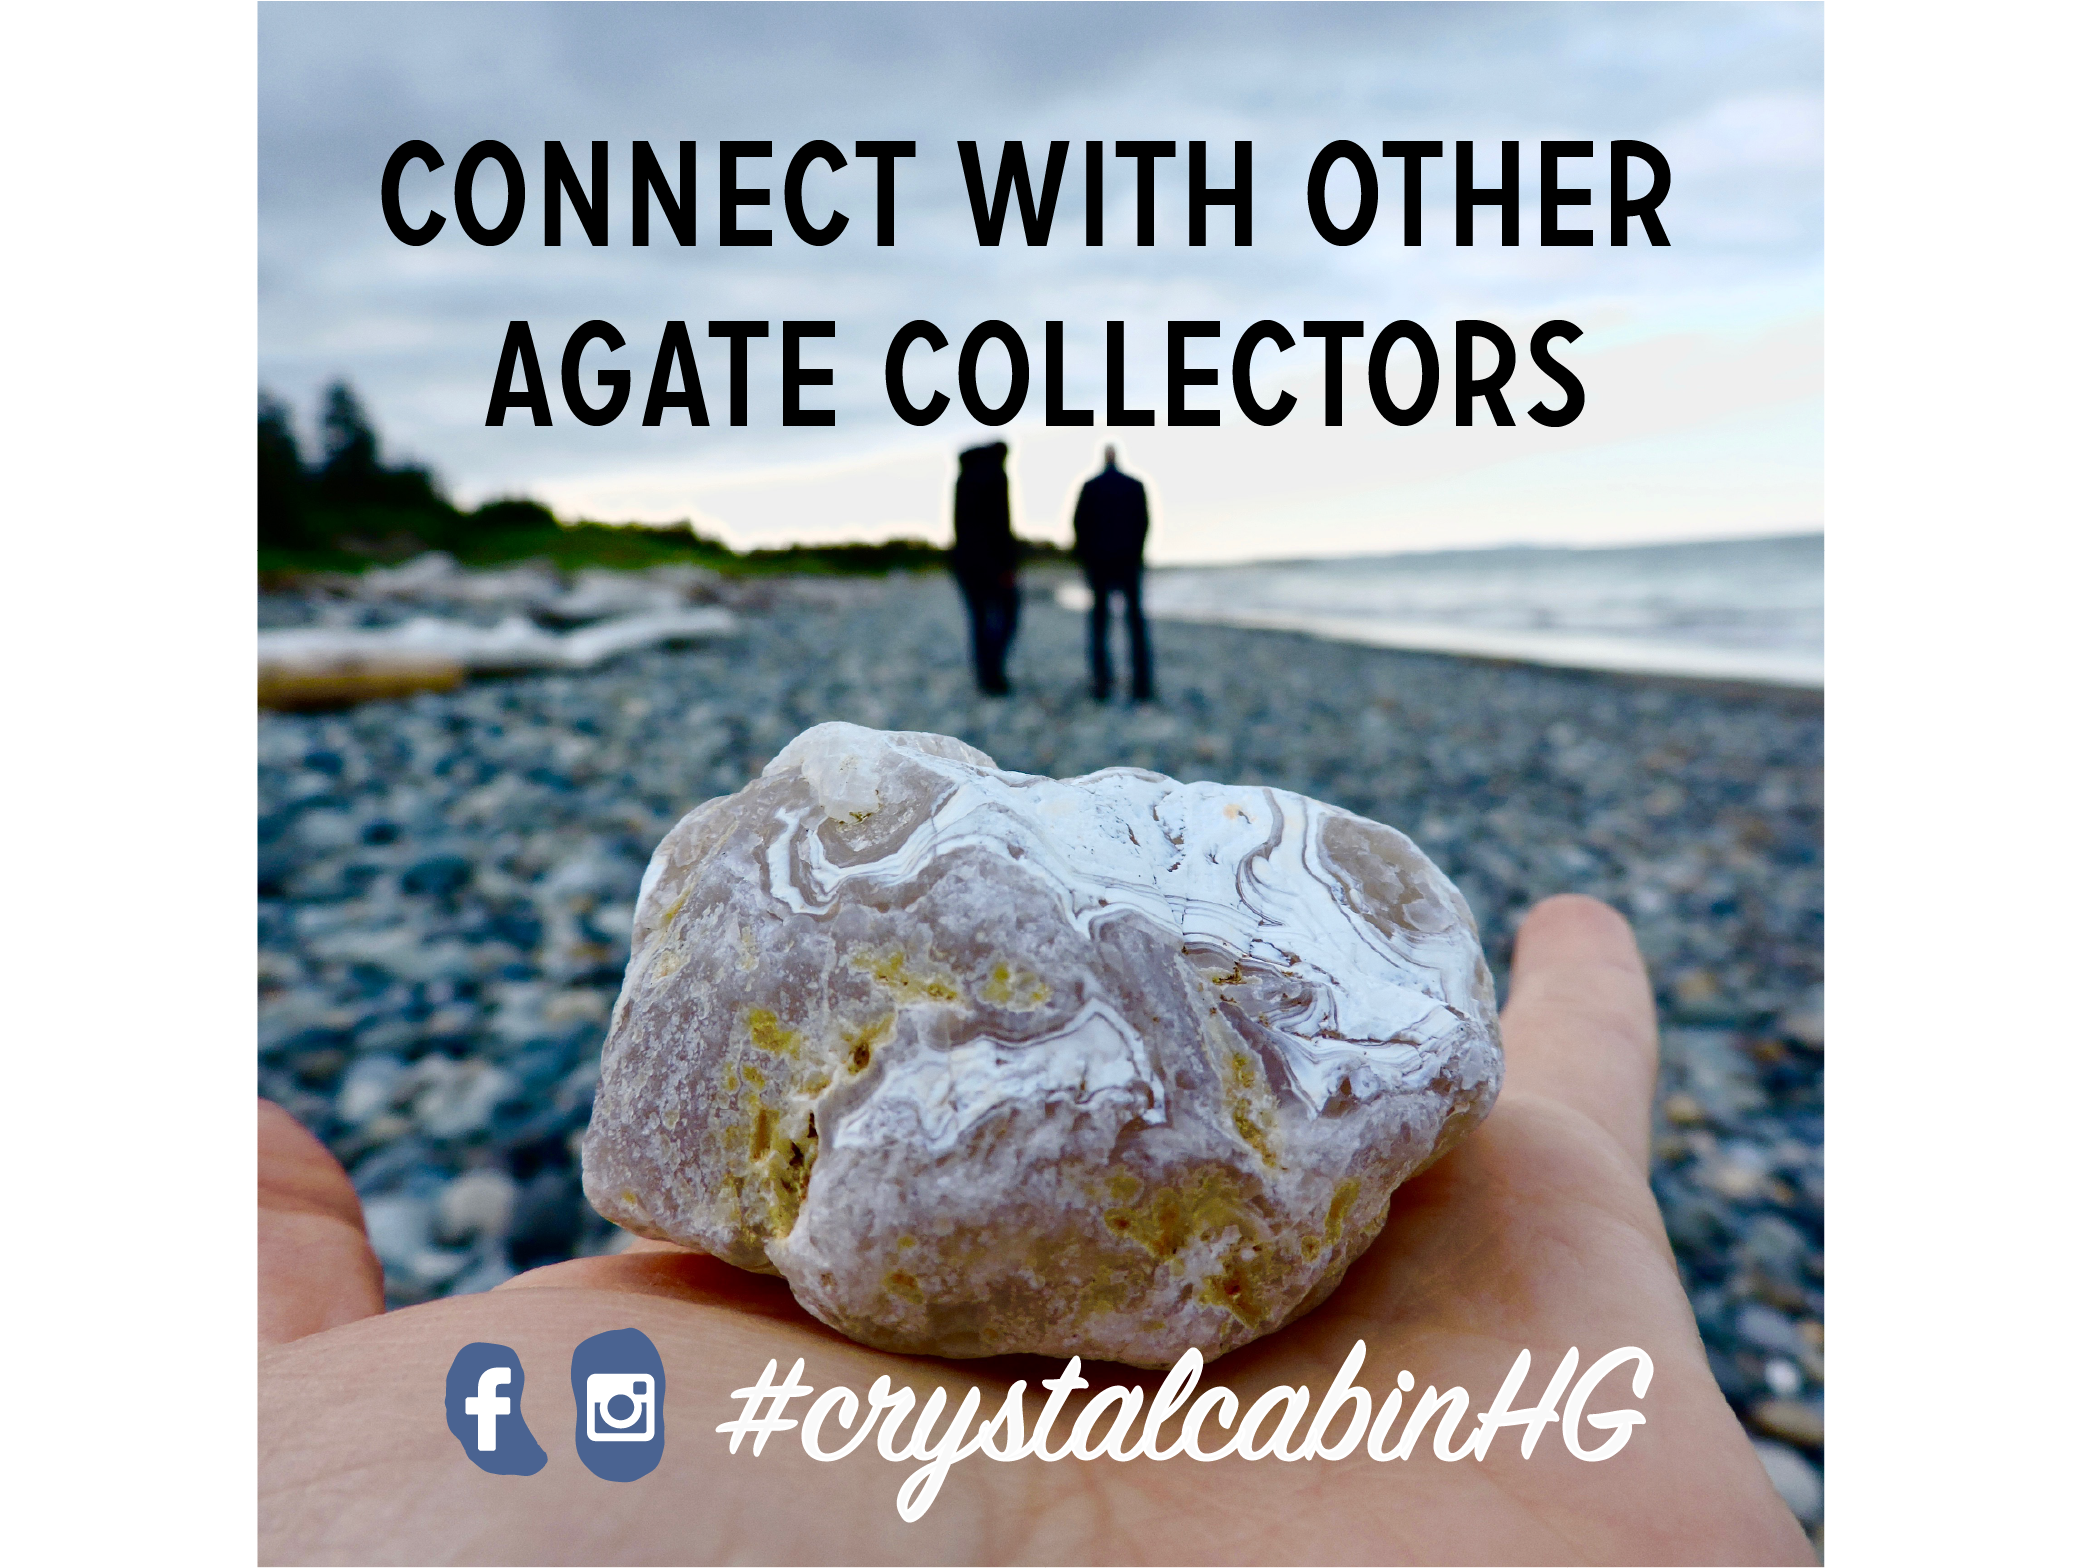 Connect with Other Agate Collectors using the hashtag #crystalcabinhg on Instagram or Facebook!